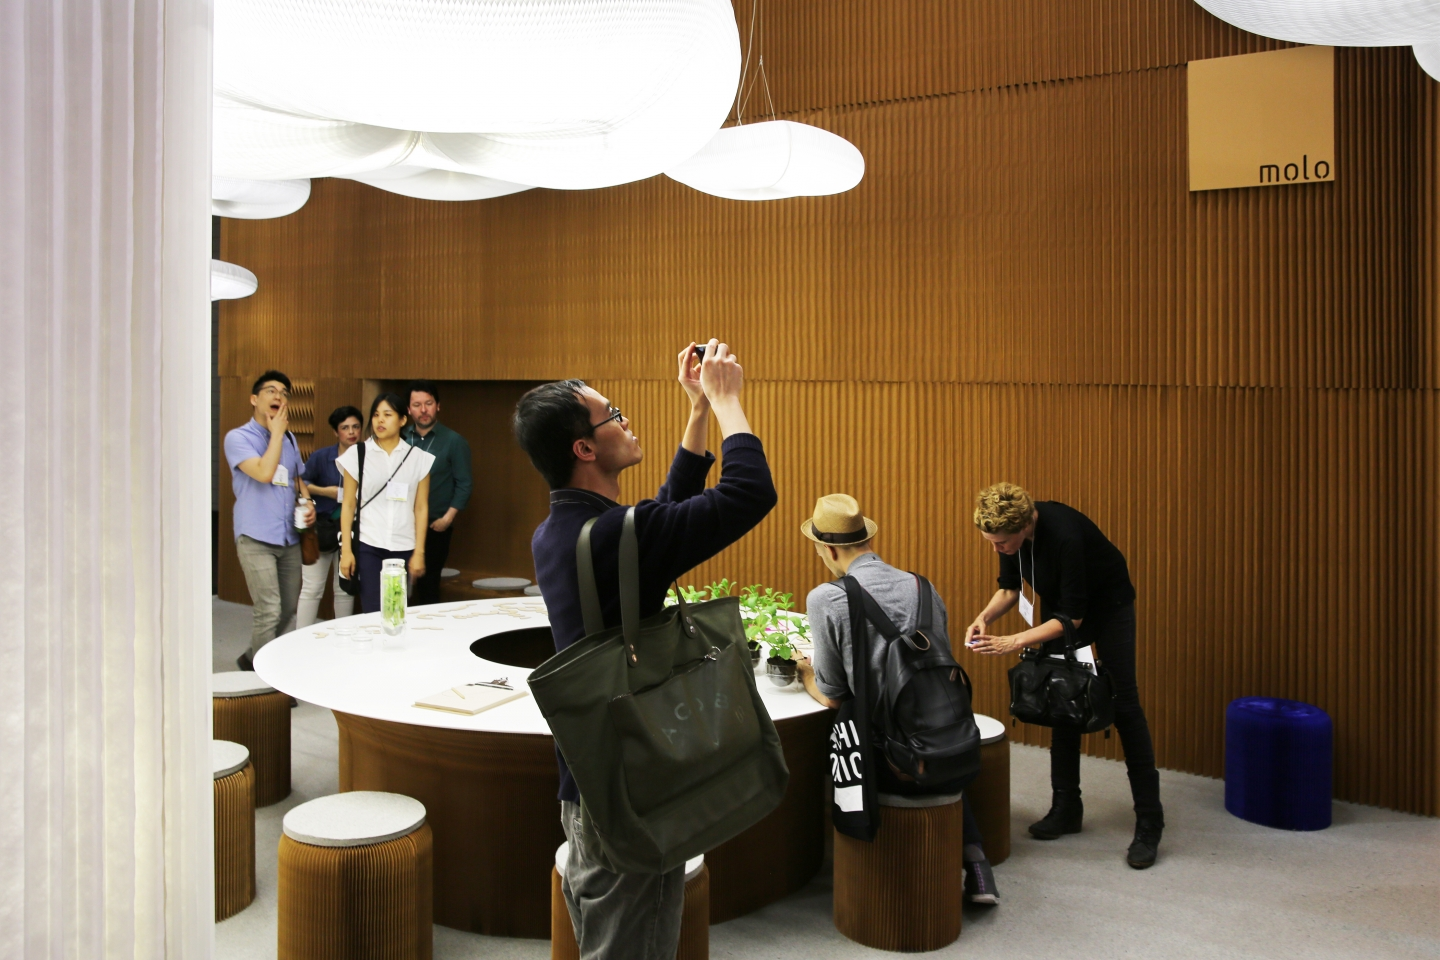 honeycomb paper furniture and cloud lighting by molo guests admire molo's installation at ICFF 2015